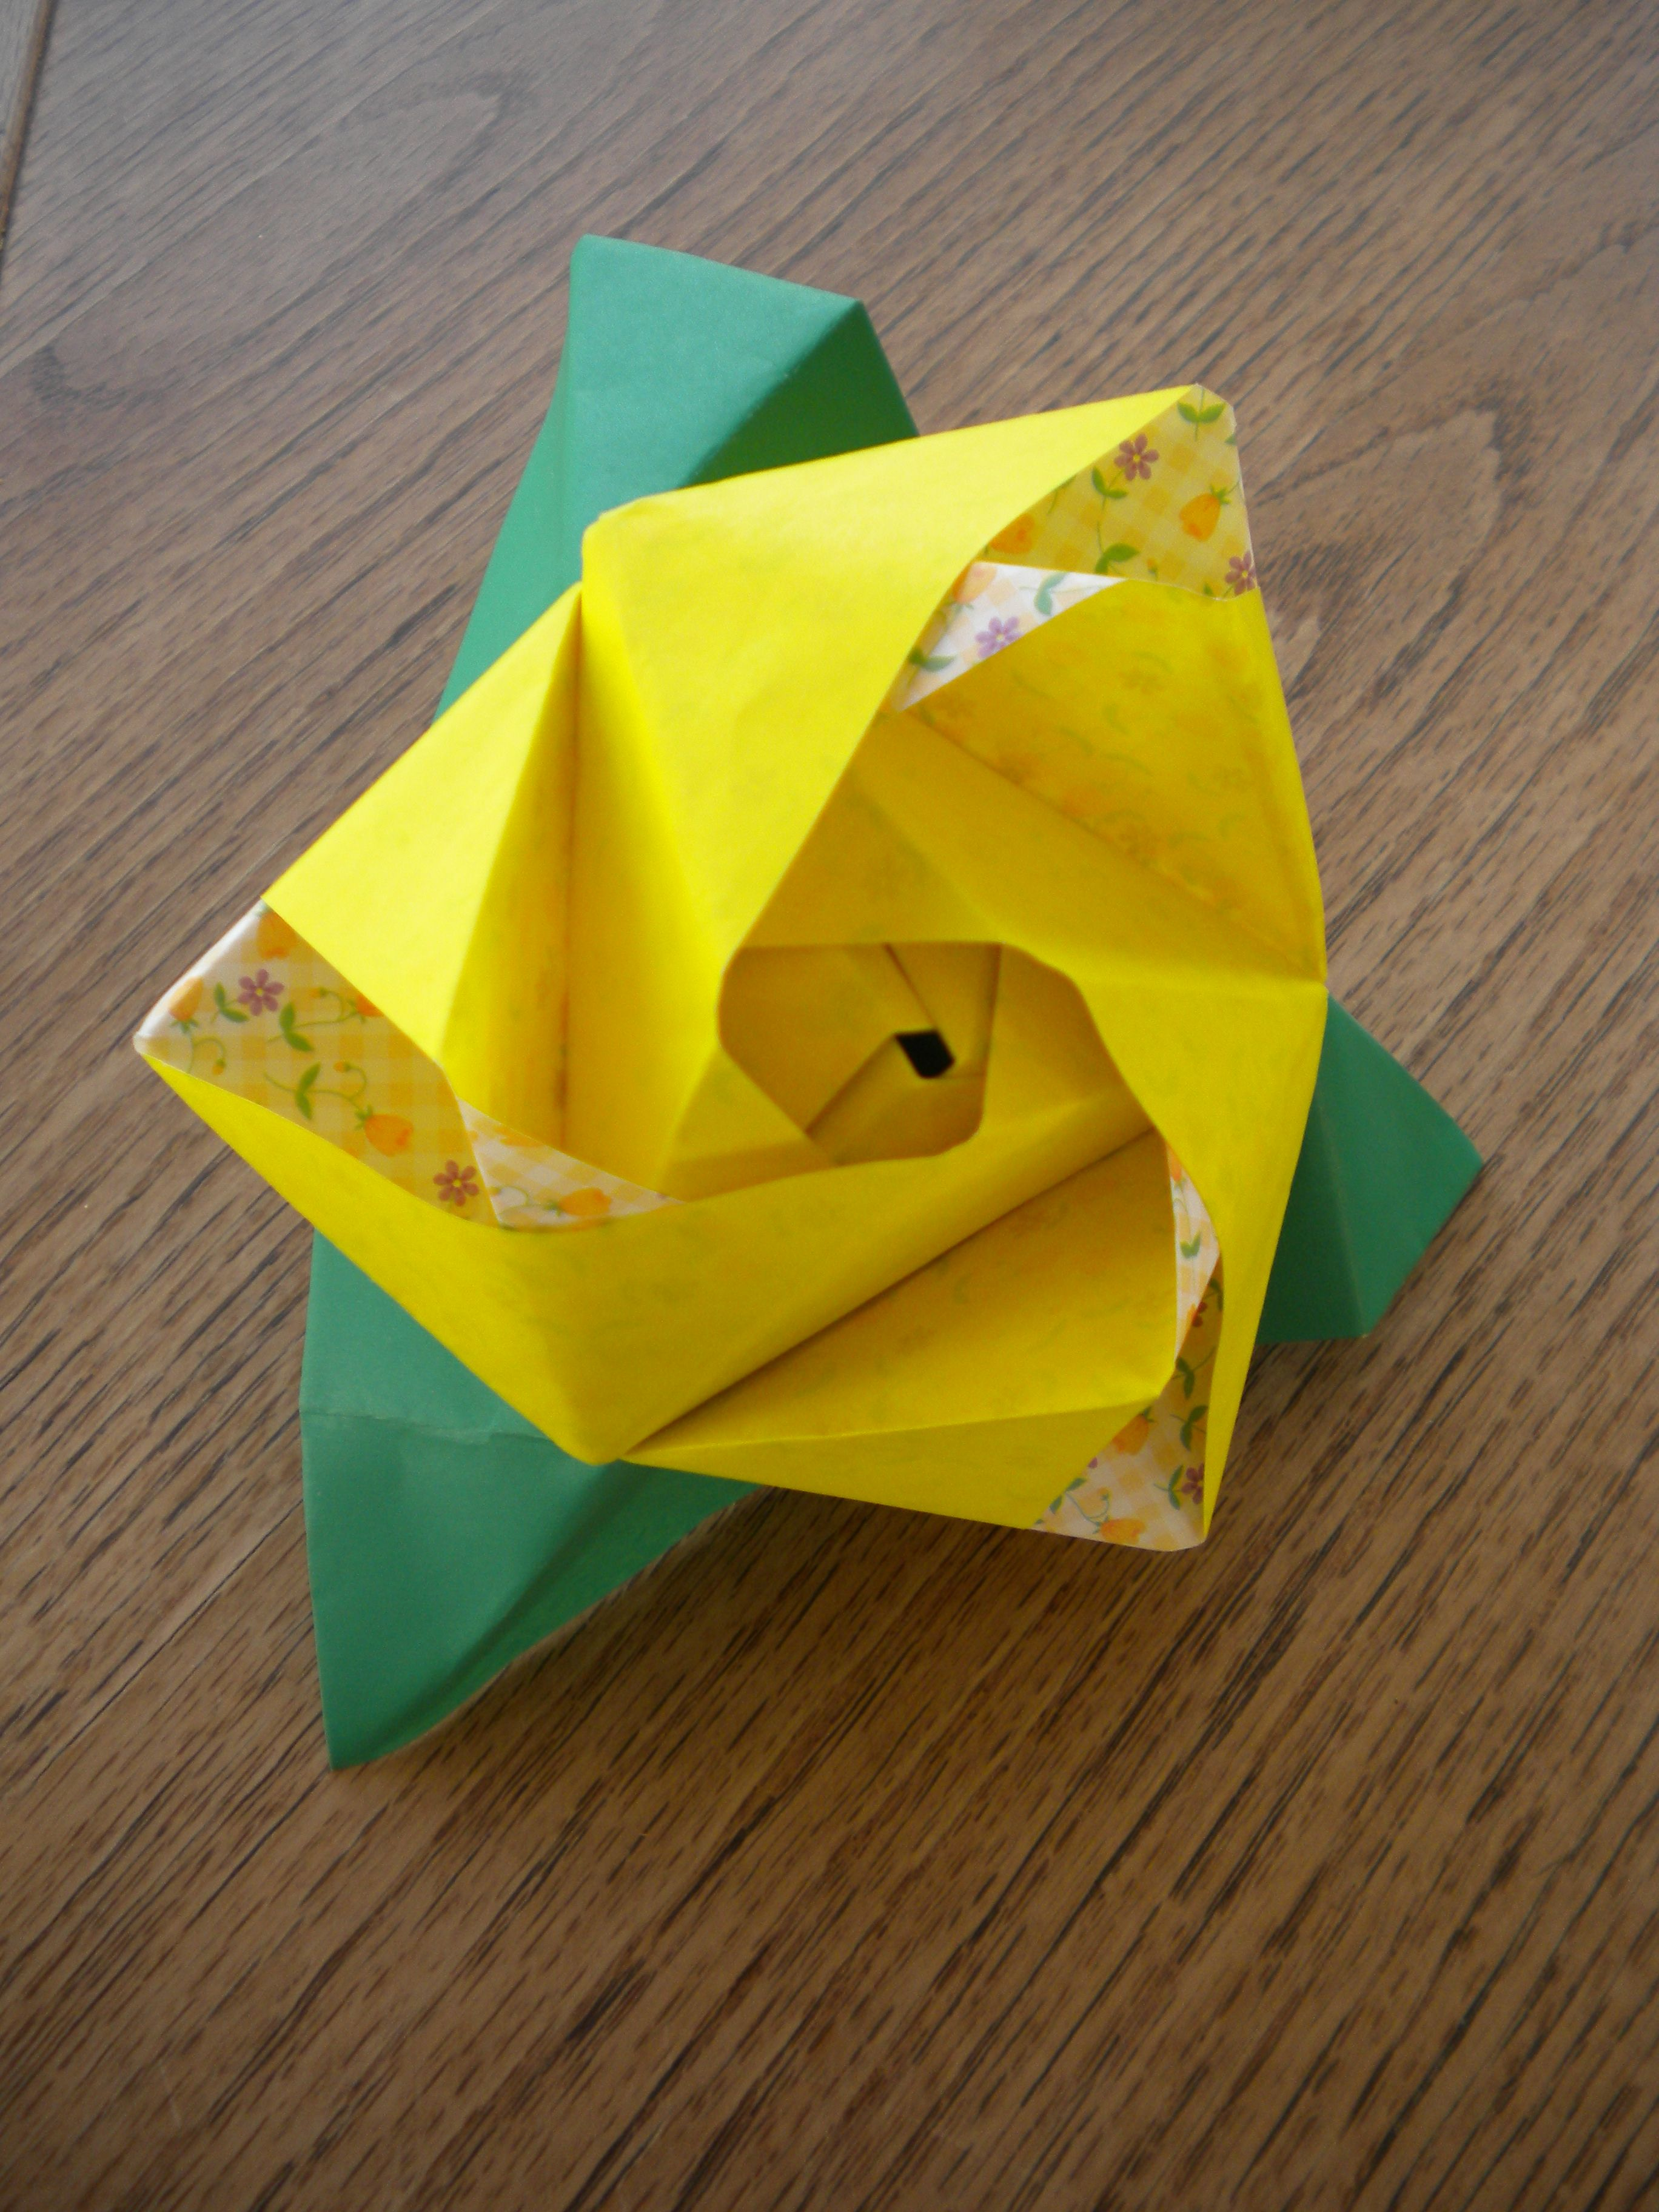 Magic Rose Cube Ms Origami Favorites Pinterest Origami And Cube